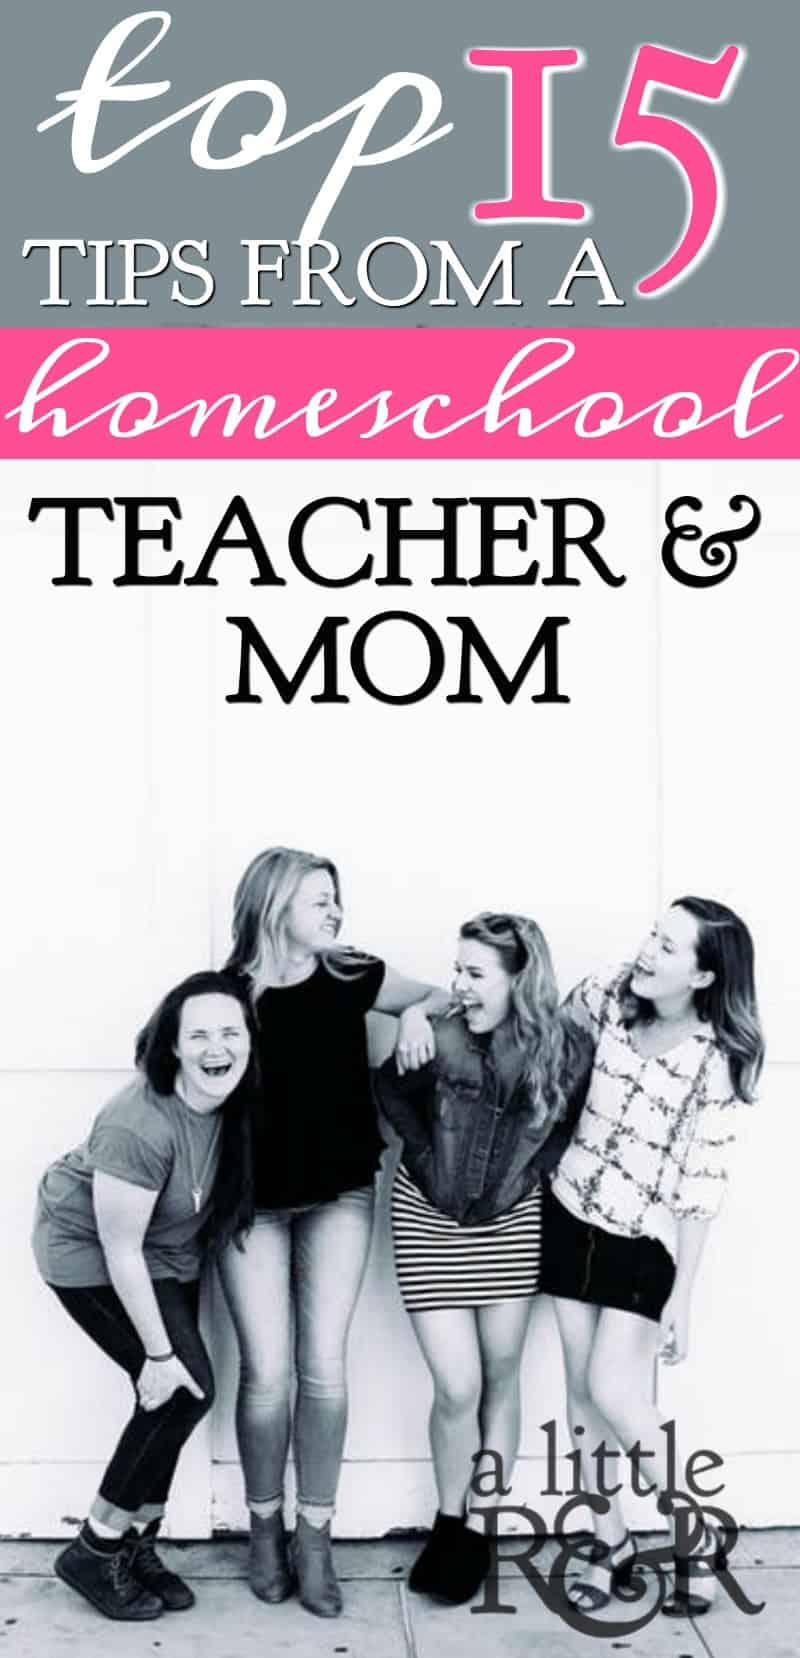 With the busyness of homeschooling our kids, it can be easy to lose sight of the most important parts. Here are 15 Tips From A Homeschool Teacher and Mom A Little R & R | Rosilind Jukić | Christianity | Christian living | Christian blog | Christian faith | Homeschool | Homeschooling | Motherhood | Mothers | #homeschooling #motherhood #parenting #Christian #Christianliving #spiritual #spiritualgrowth #Bible #God #jesus